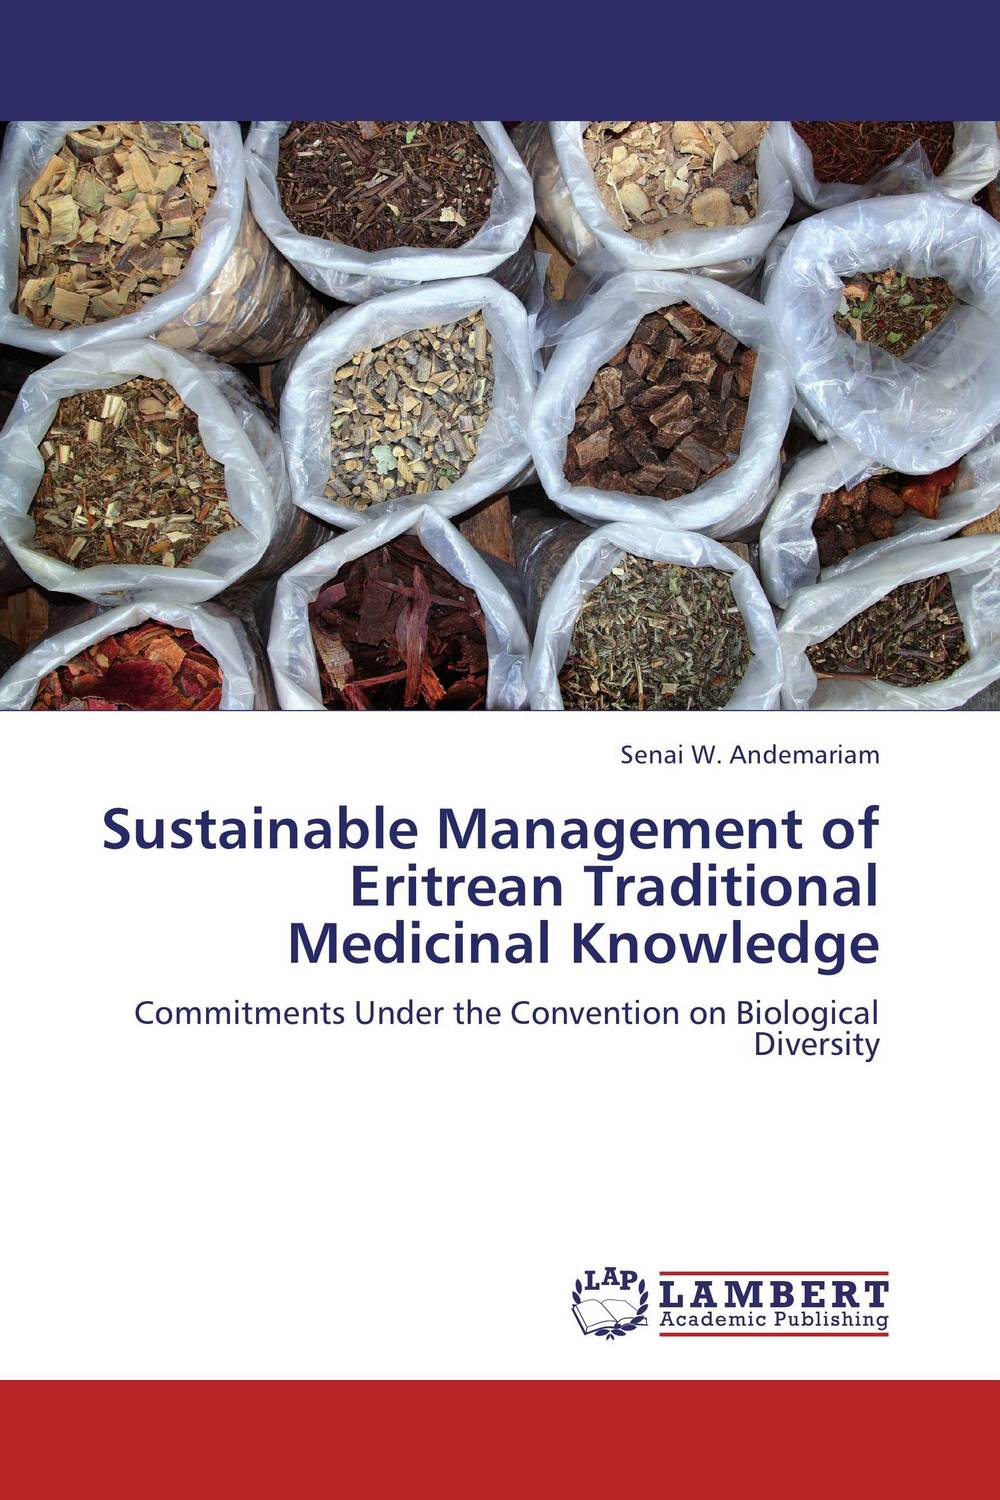 Sustainable Management of Eritrean Traditional Medicinal Knowledge ross levin implementing the wealth management index tools to build your practice and measure client success